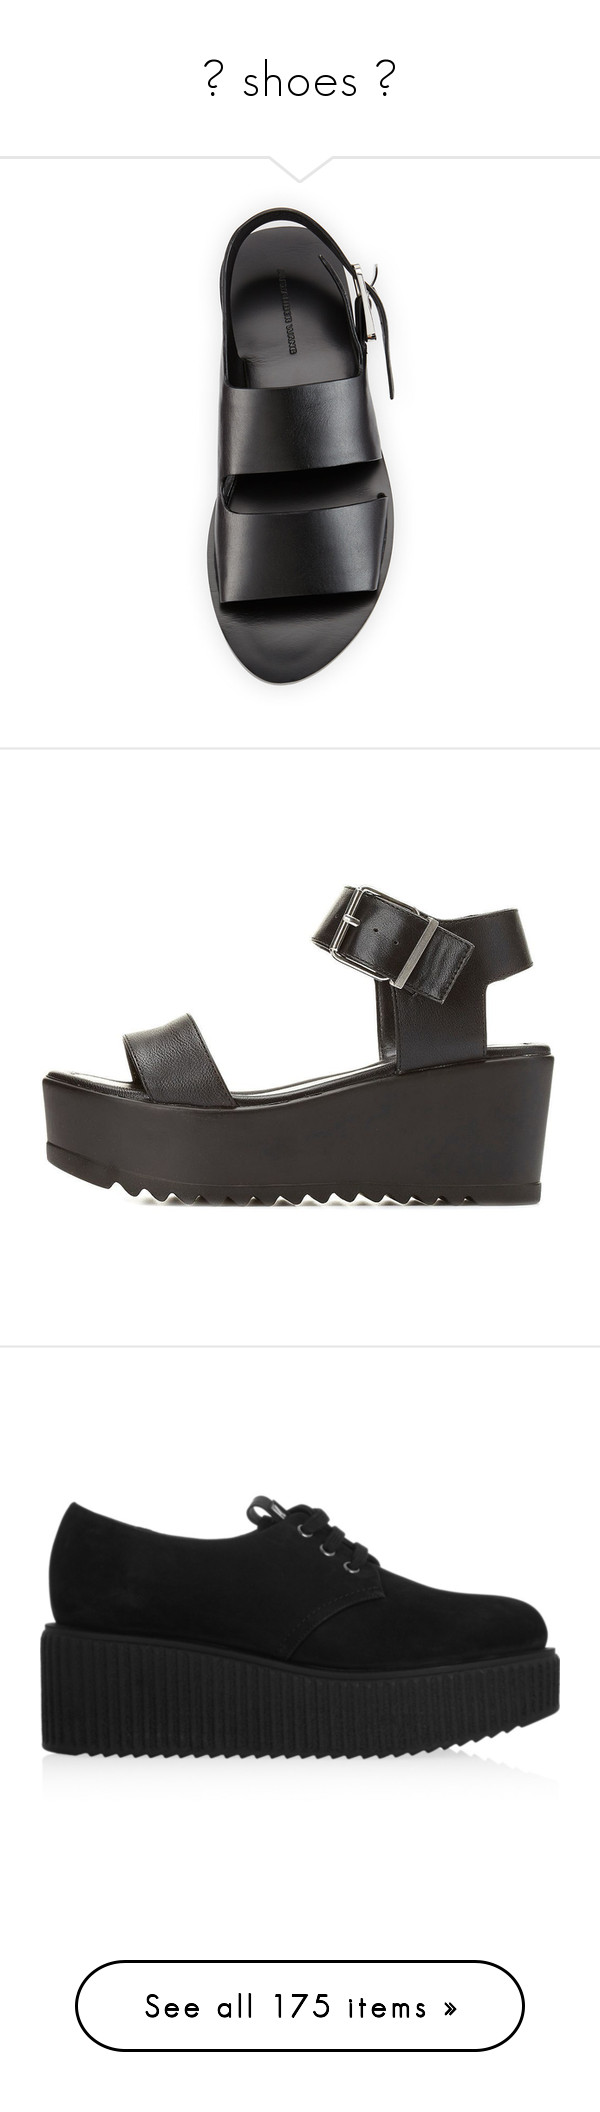 """""""♥ shoes ♥"""" by bx-sxnnt ❤ liked on Polyvore featuring shoes, sandals, open toe flat shoes, leather buckle sandals, leather shoes, alexander wang sandals, flat leather sandals, black, black wedge shoes and black flatform sandals"""